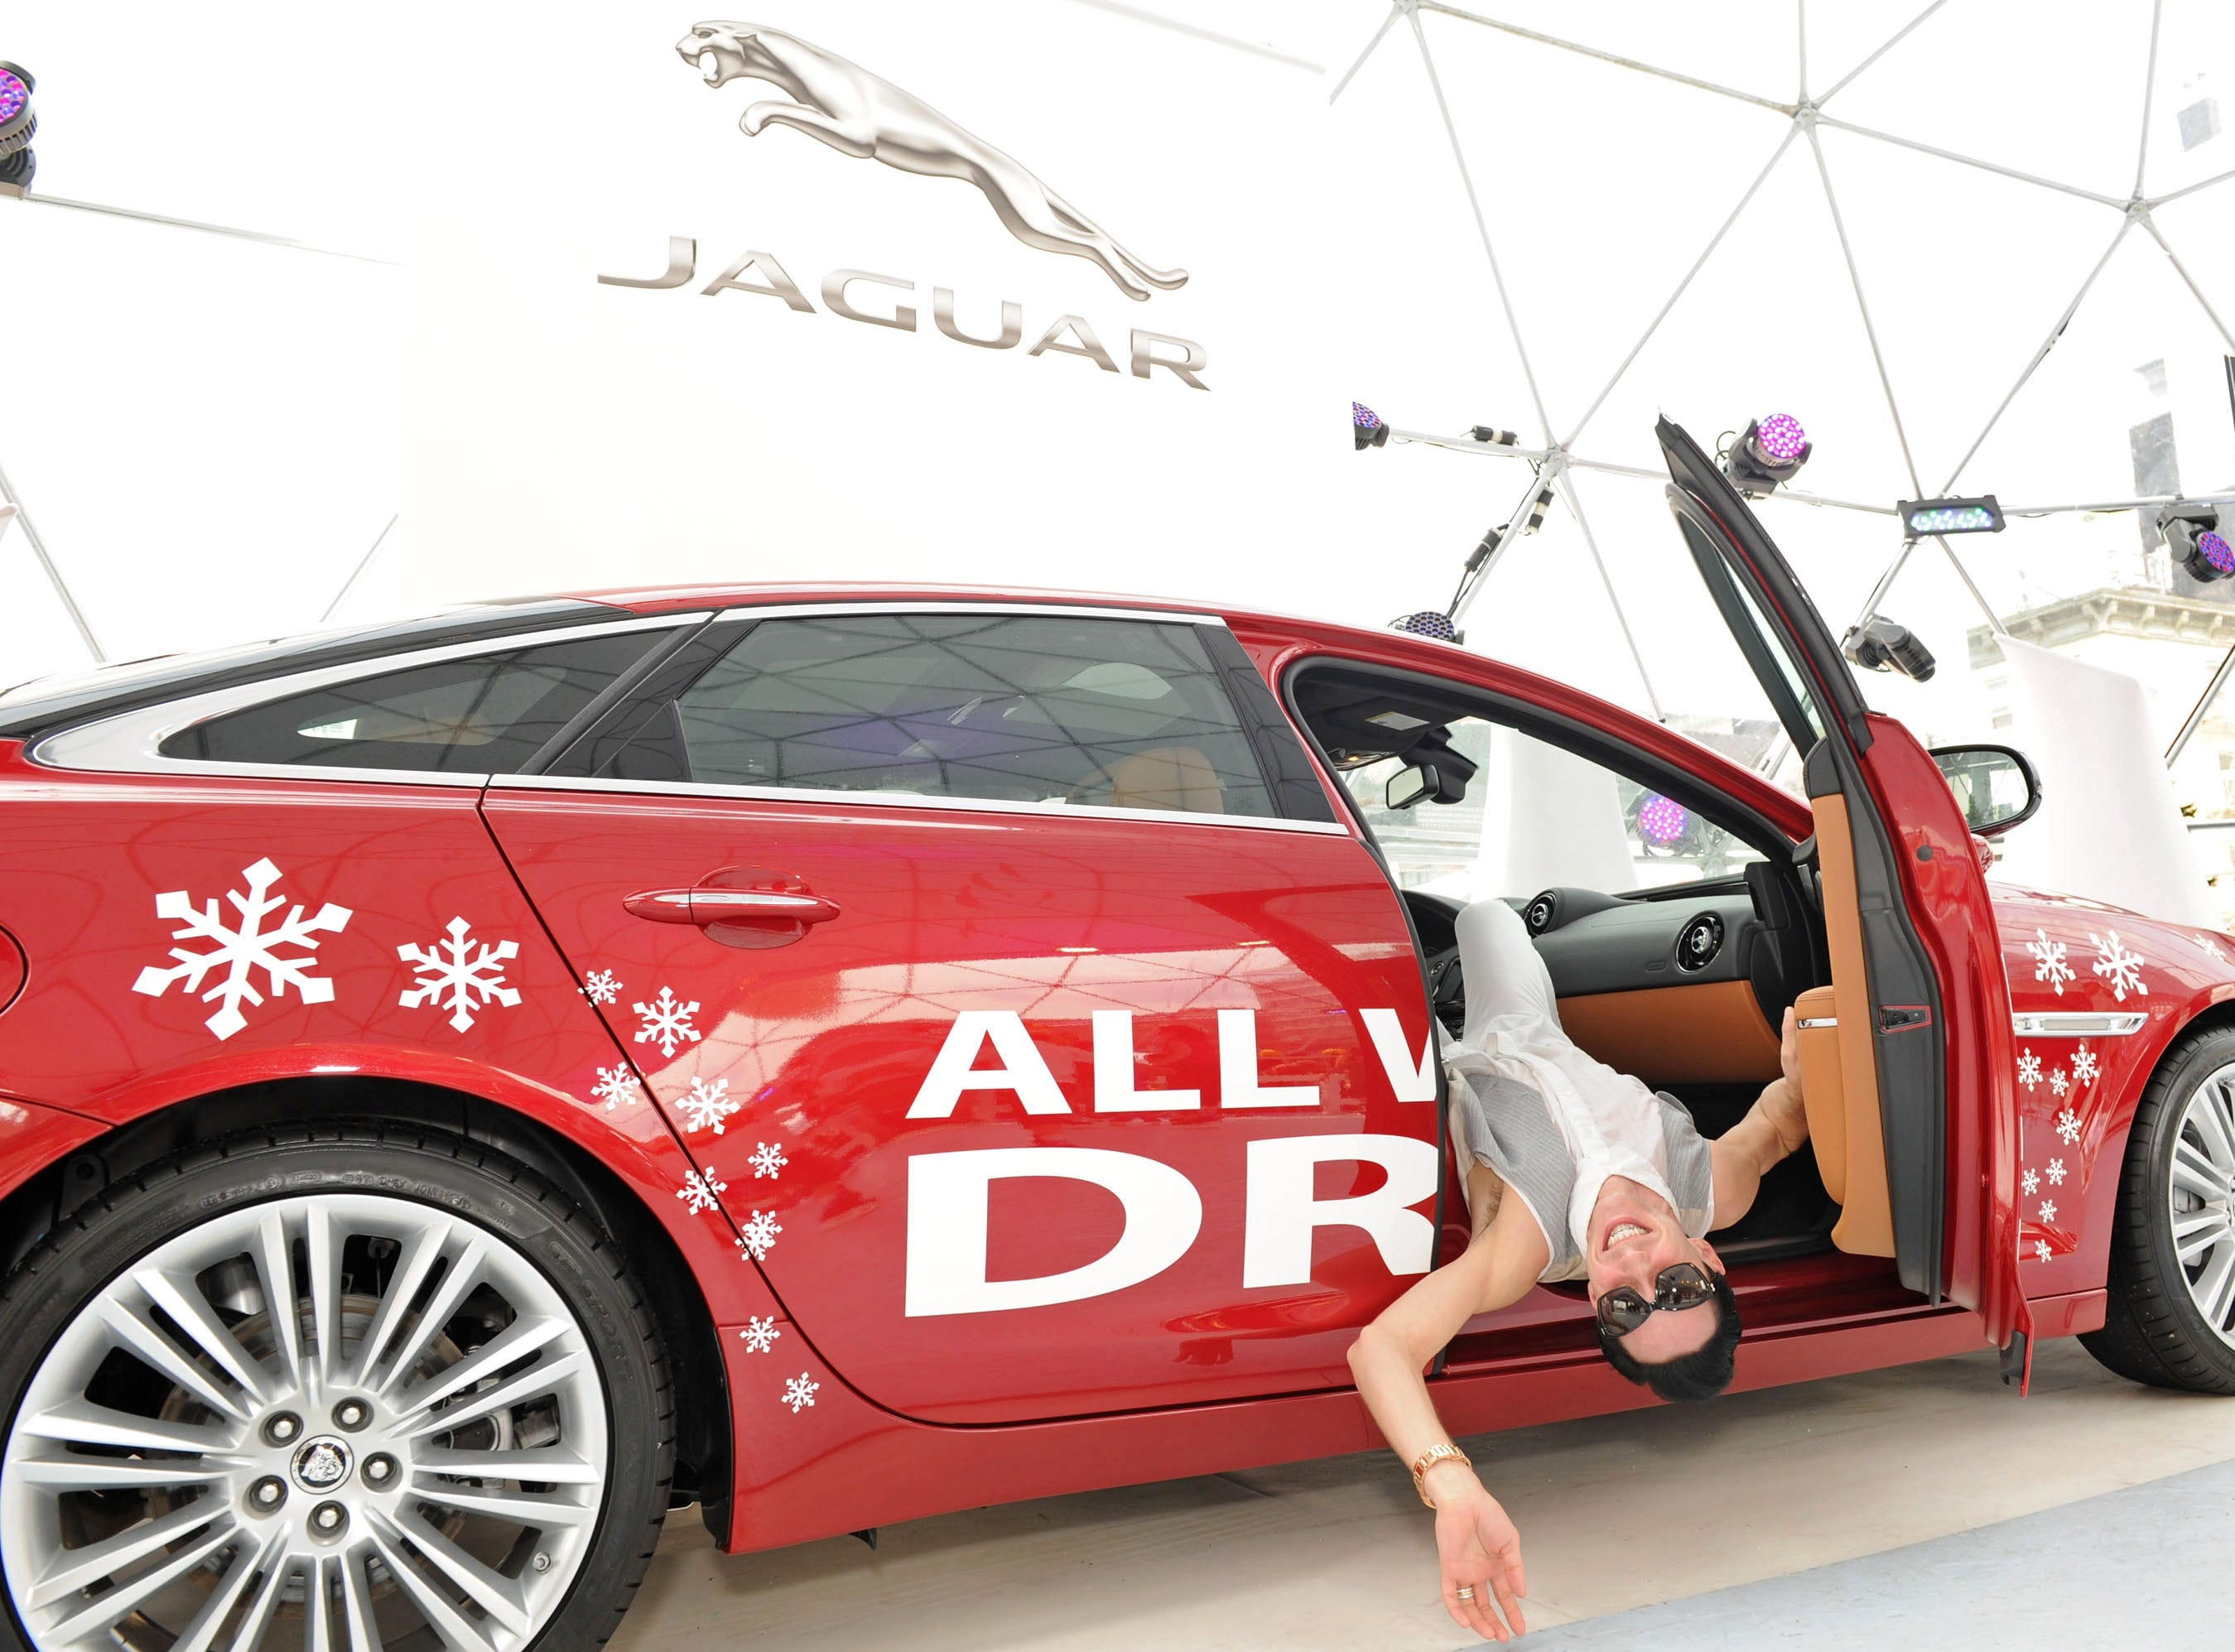 Two-time Olympian and world bronze medalist figure skater Johnny Weir poses in the 2013 Jaguar XJ AWD at the brand's Chill NY event on August 17, 2012 in New York City.